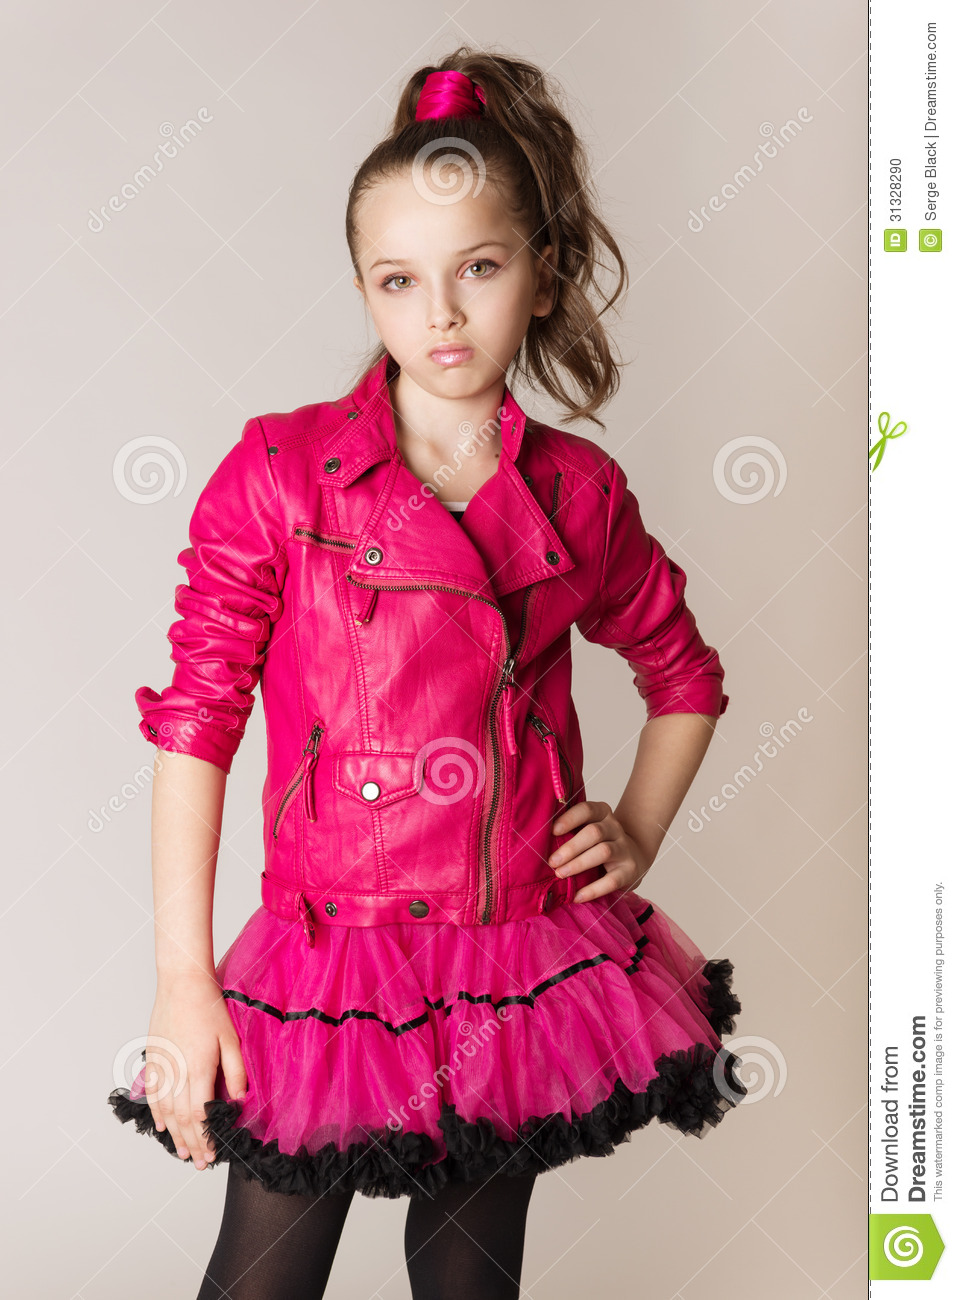 Fashion Little Girl In Glam Rock Style Stock Photo Image